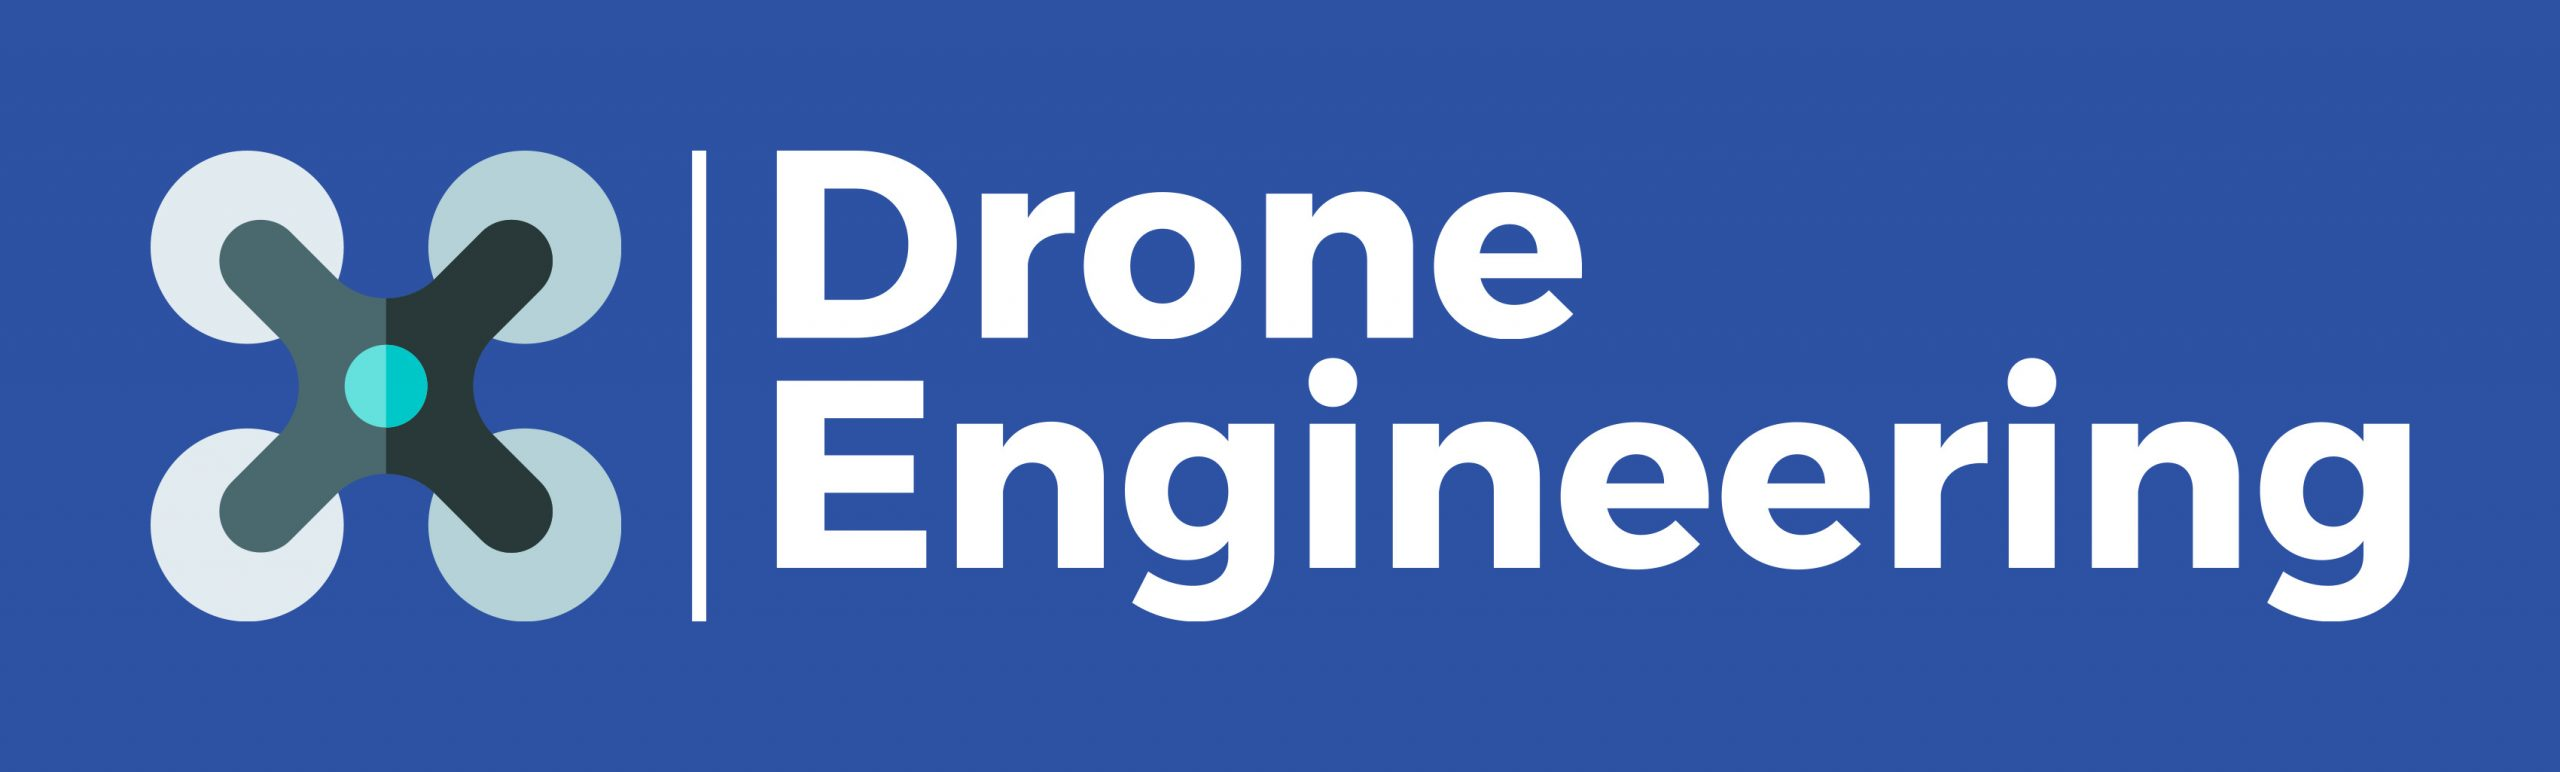 Logo Drone Engineering fond bleu